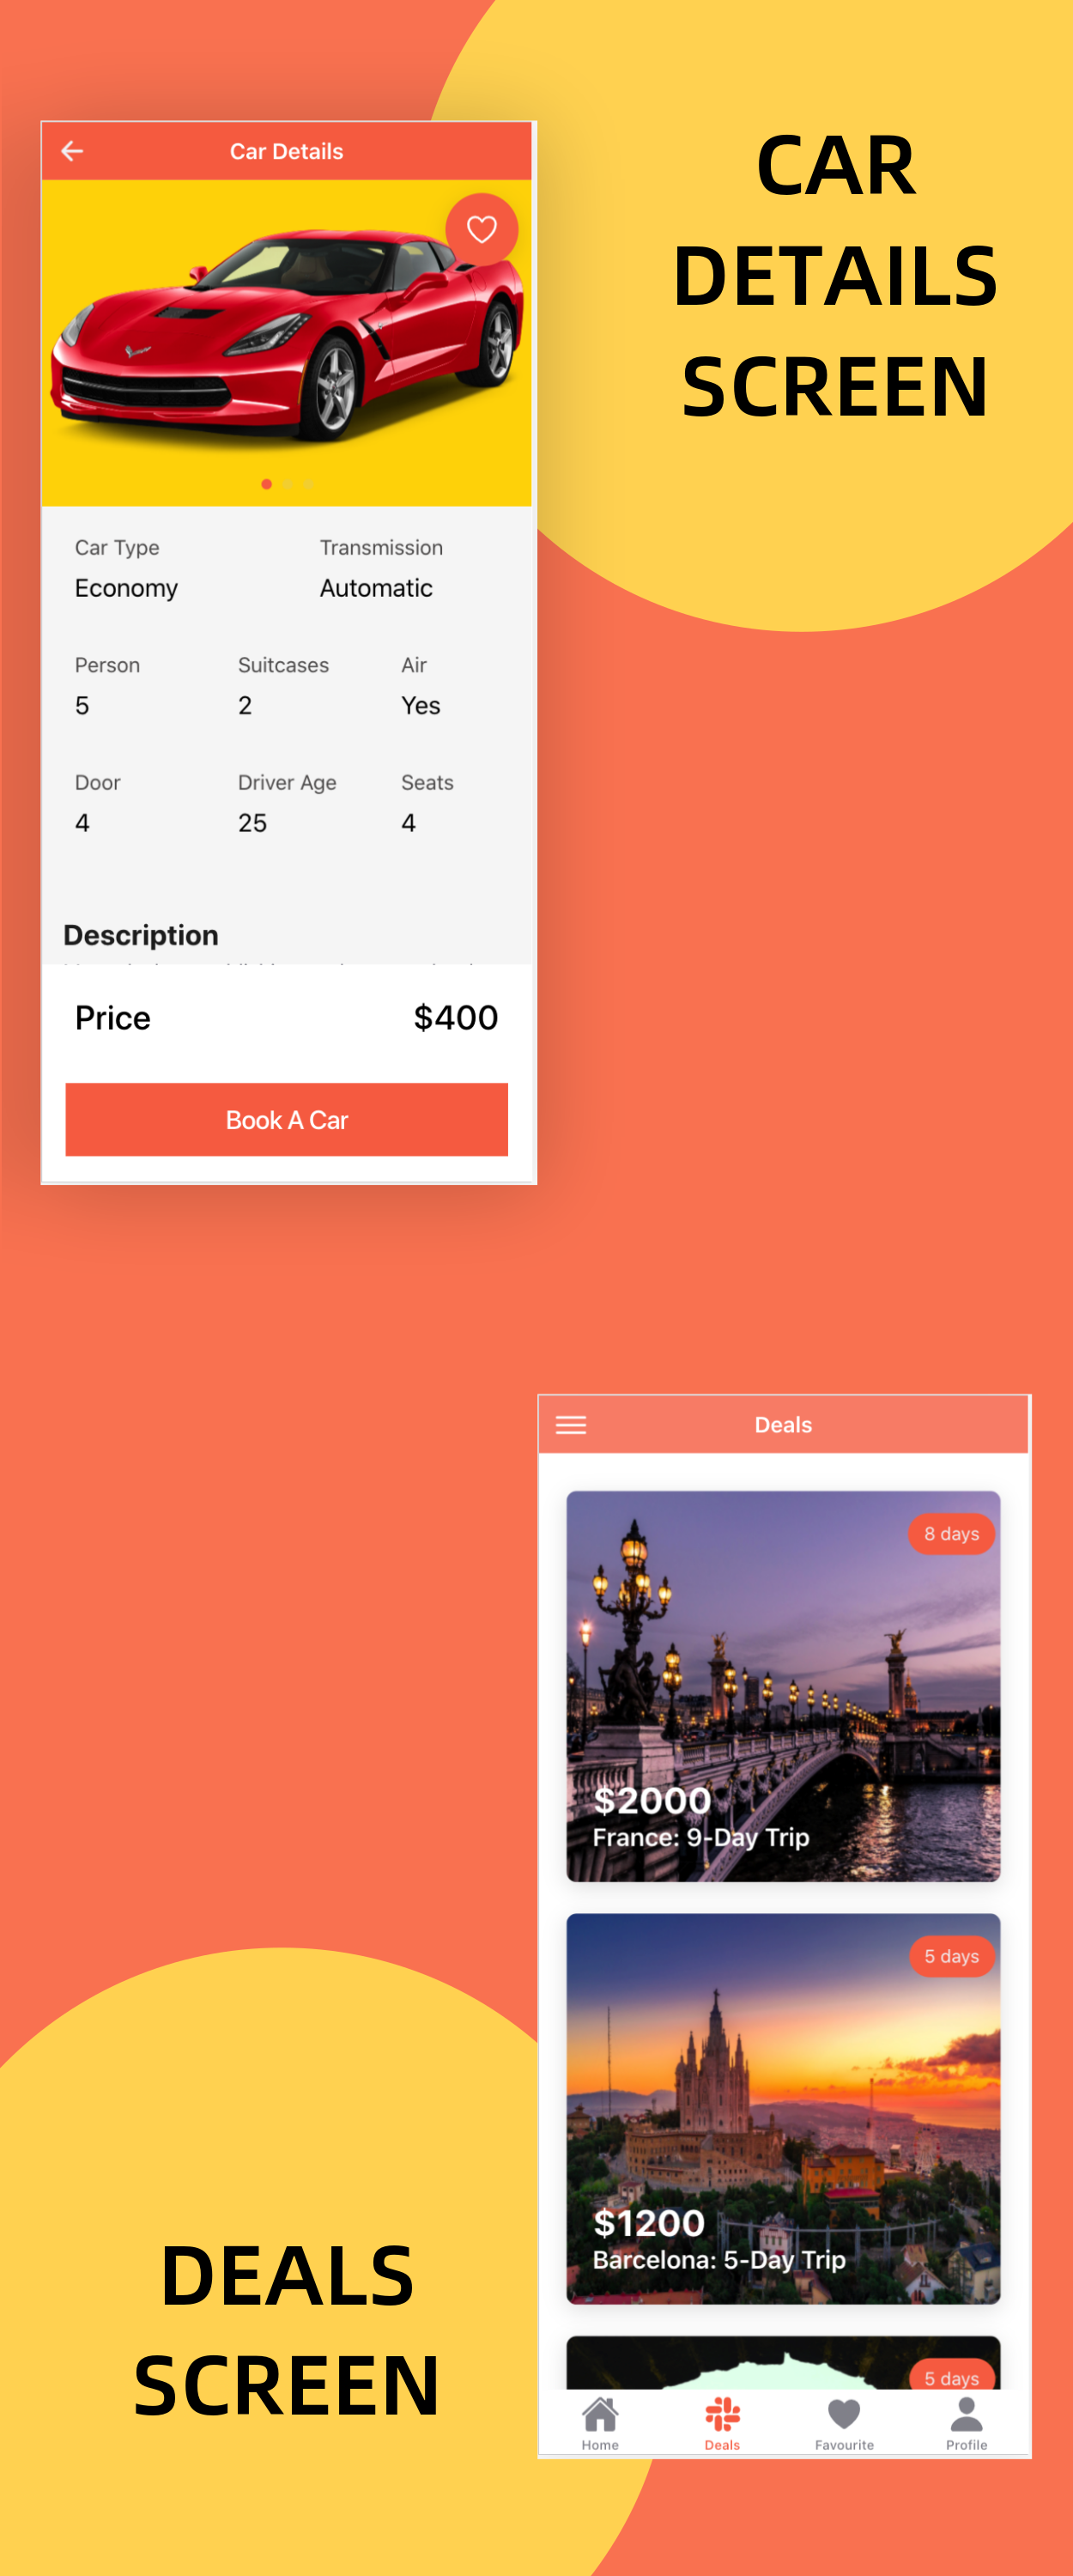 TravelEasy - A Travel Agency Theme UI App By Ionic 5 (Car, Hotel, Flight Booking) - 10